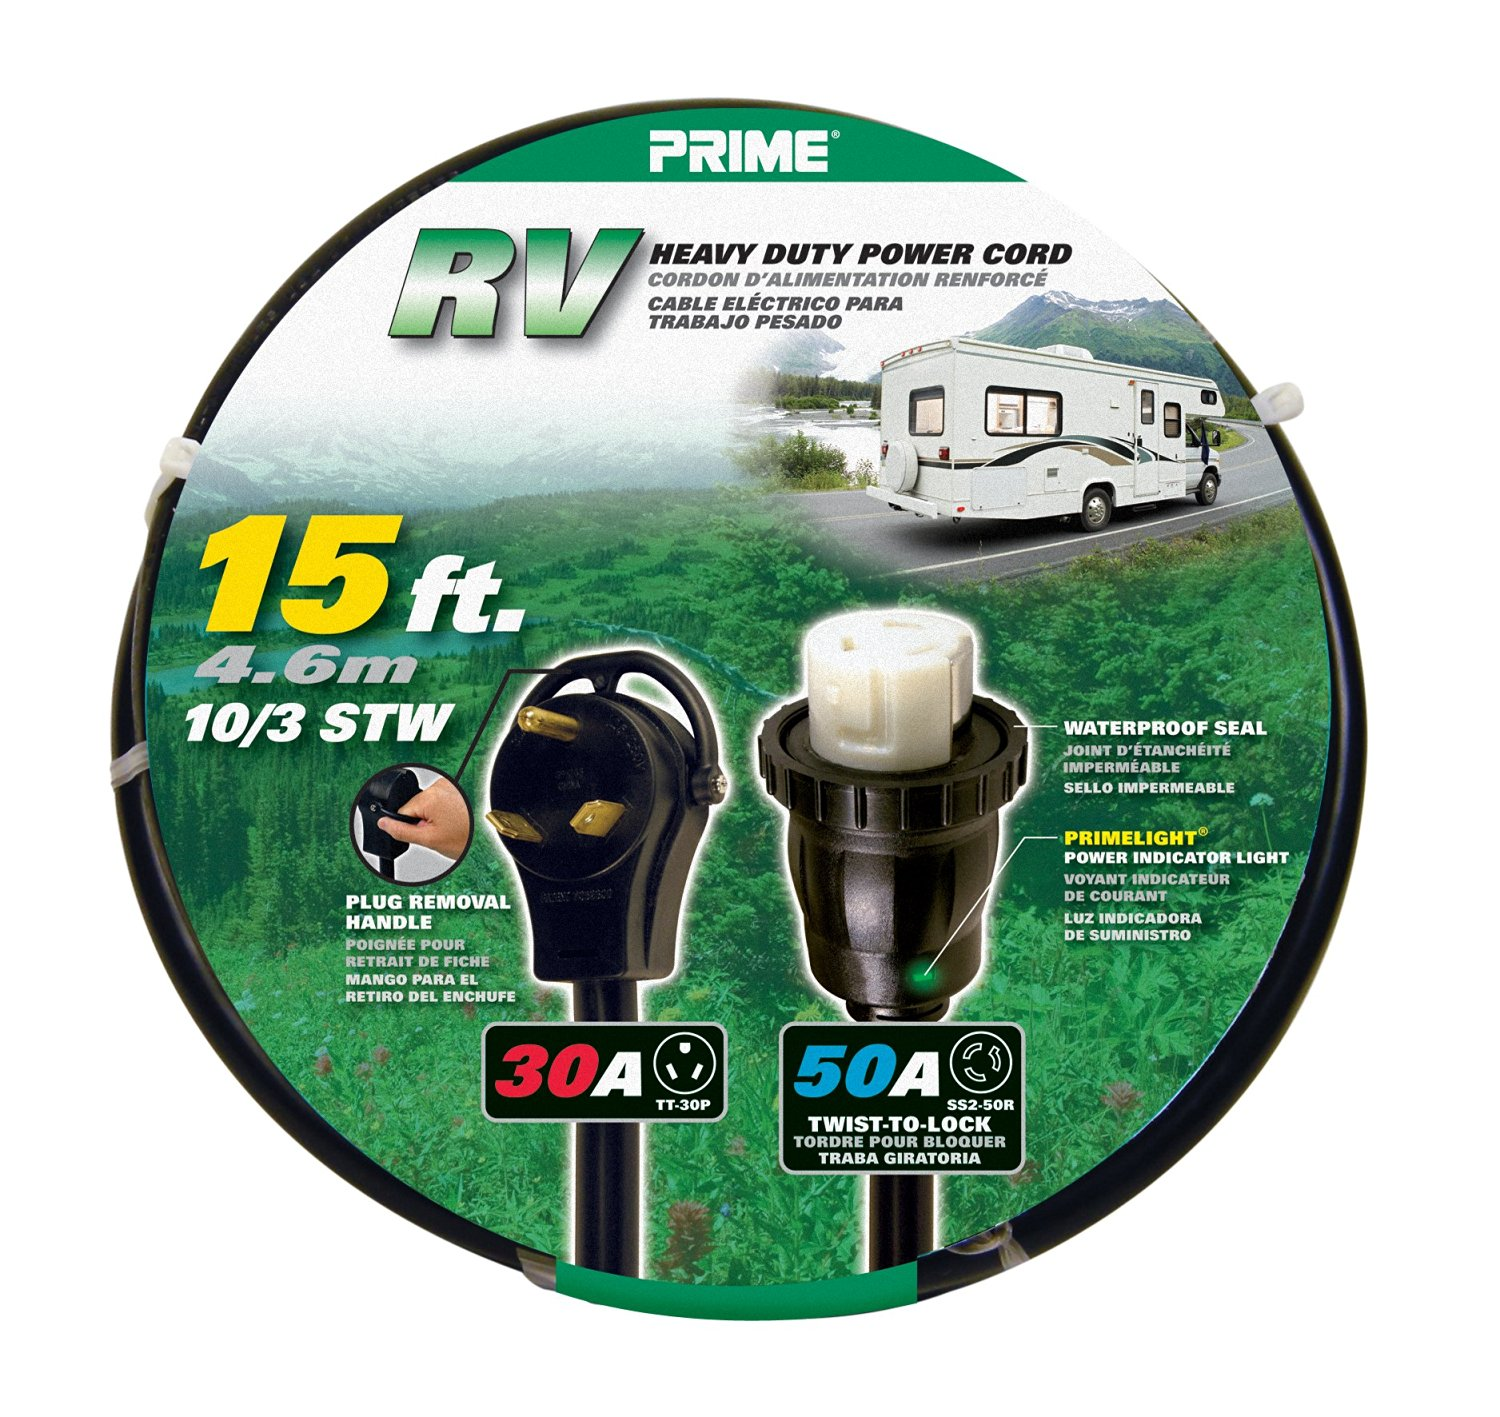 Prime RV3050T915 RV Power Cord, 15 ft.30 Amp right angle plug with handle and 50 Amp Twist-to-Lock Connector